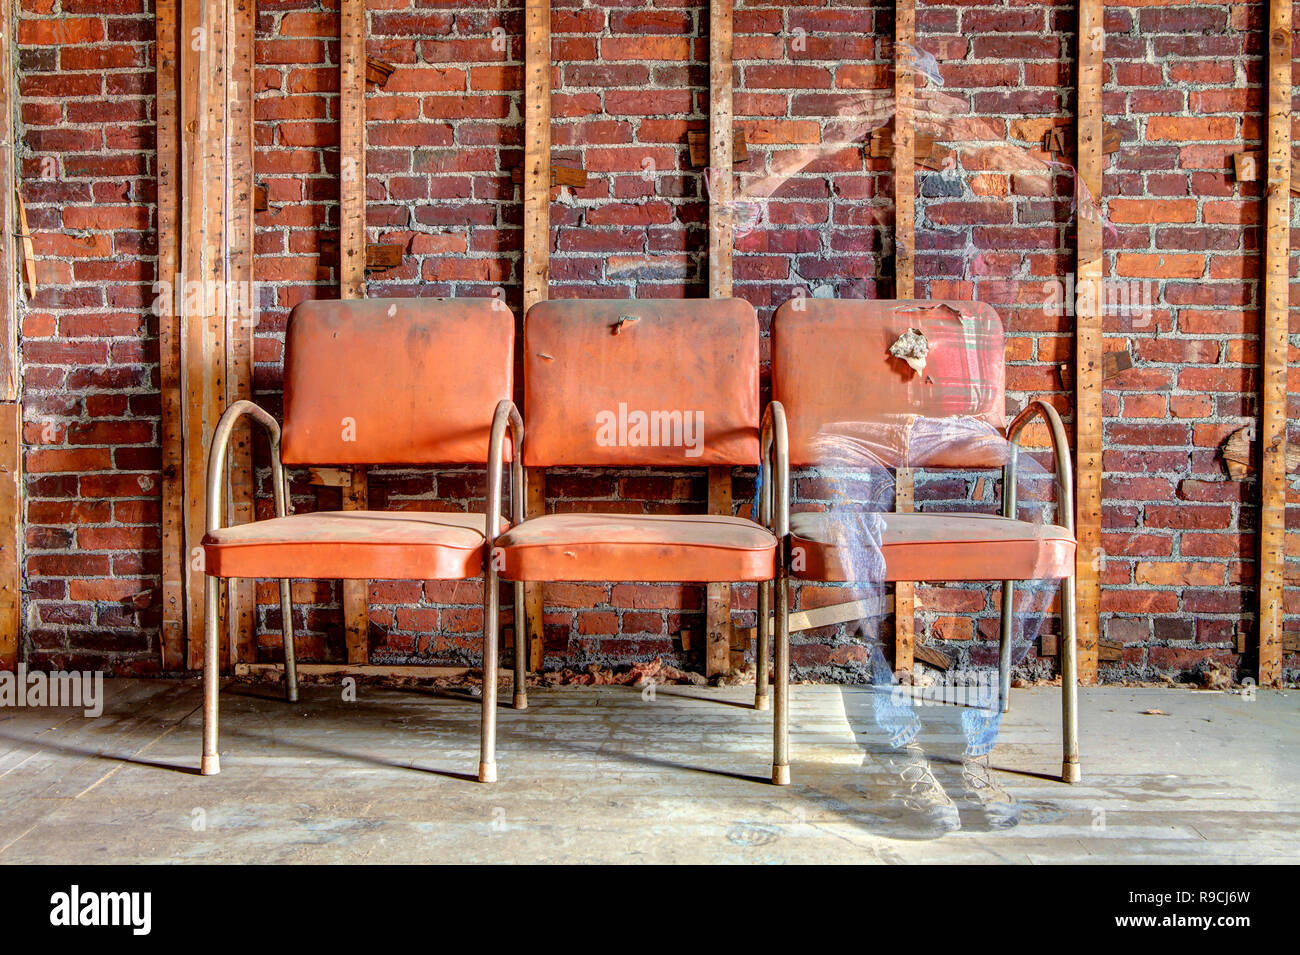 Ghostly image of a man sitting on an orange chair fading away see-through body in abandoned building. - Stock Image